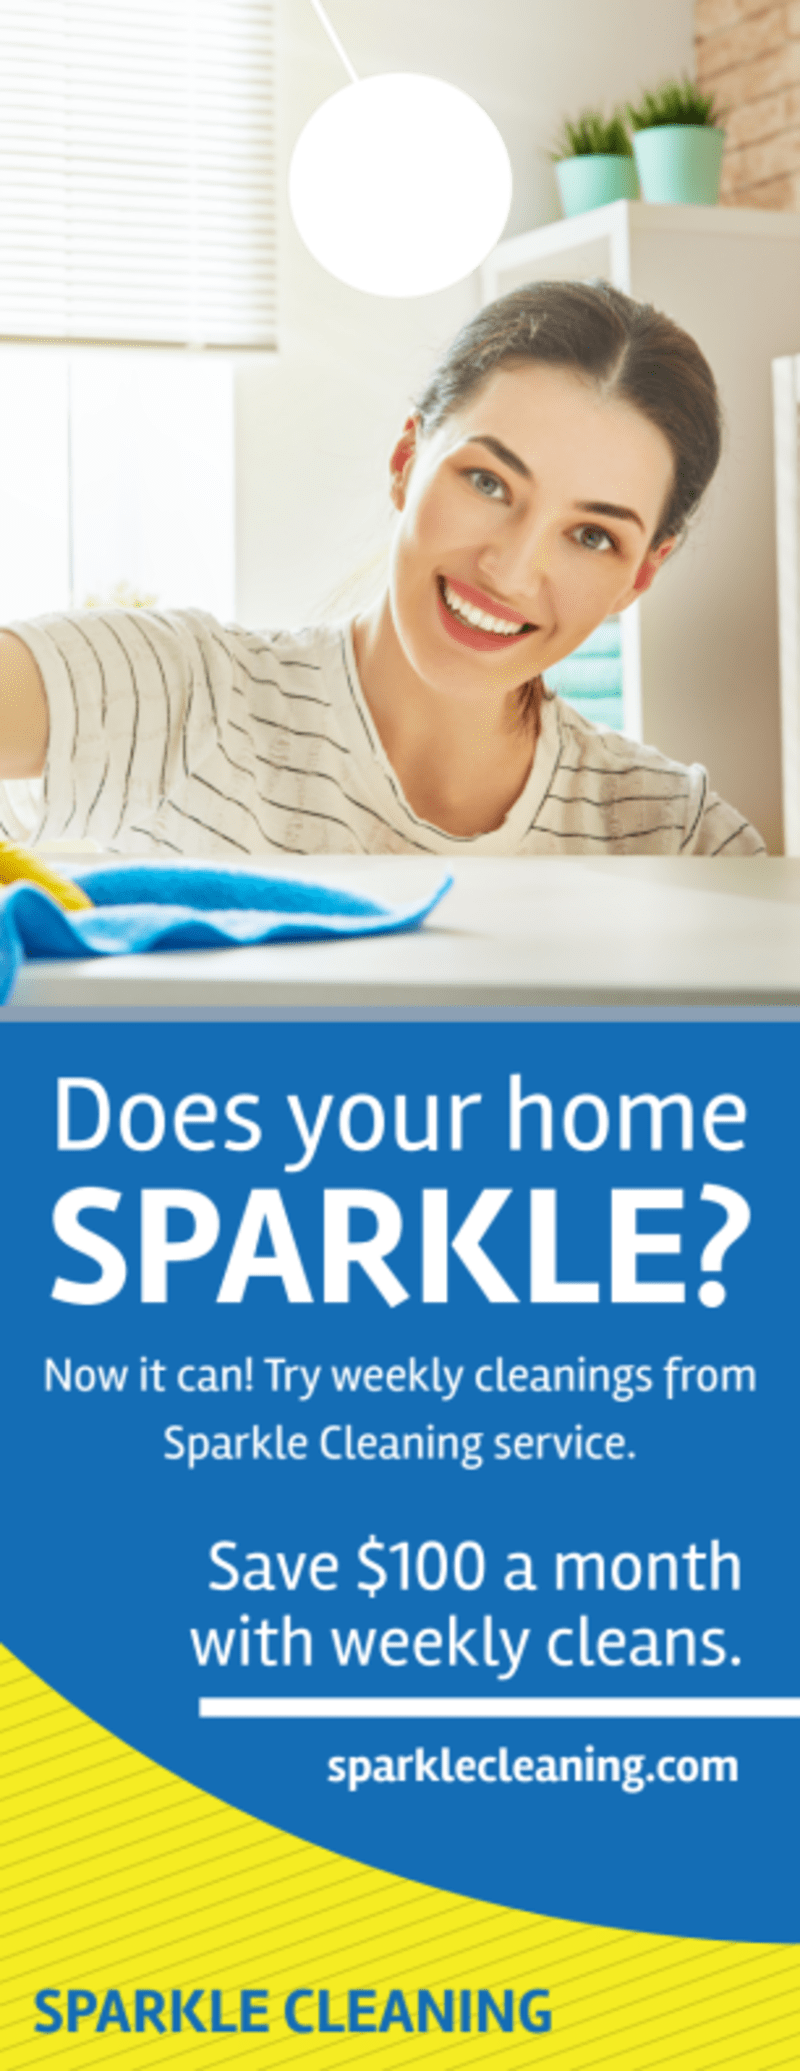 Sparkle Cleaning Service Door Hanger Template Preview 2